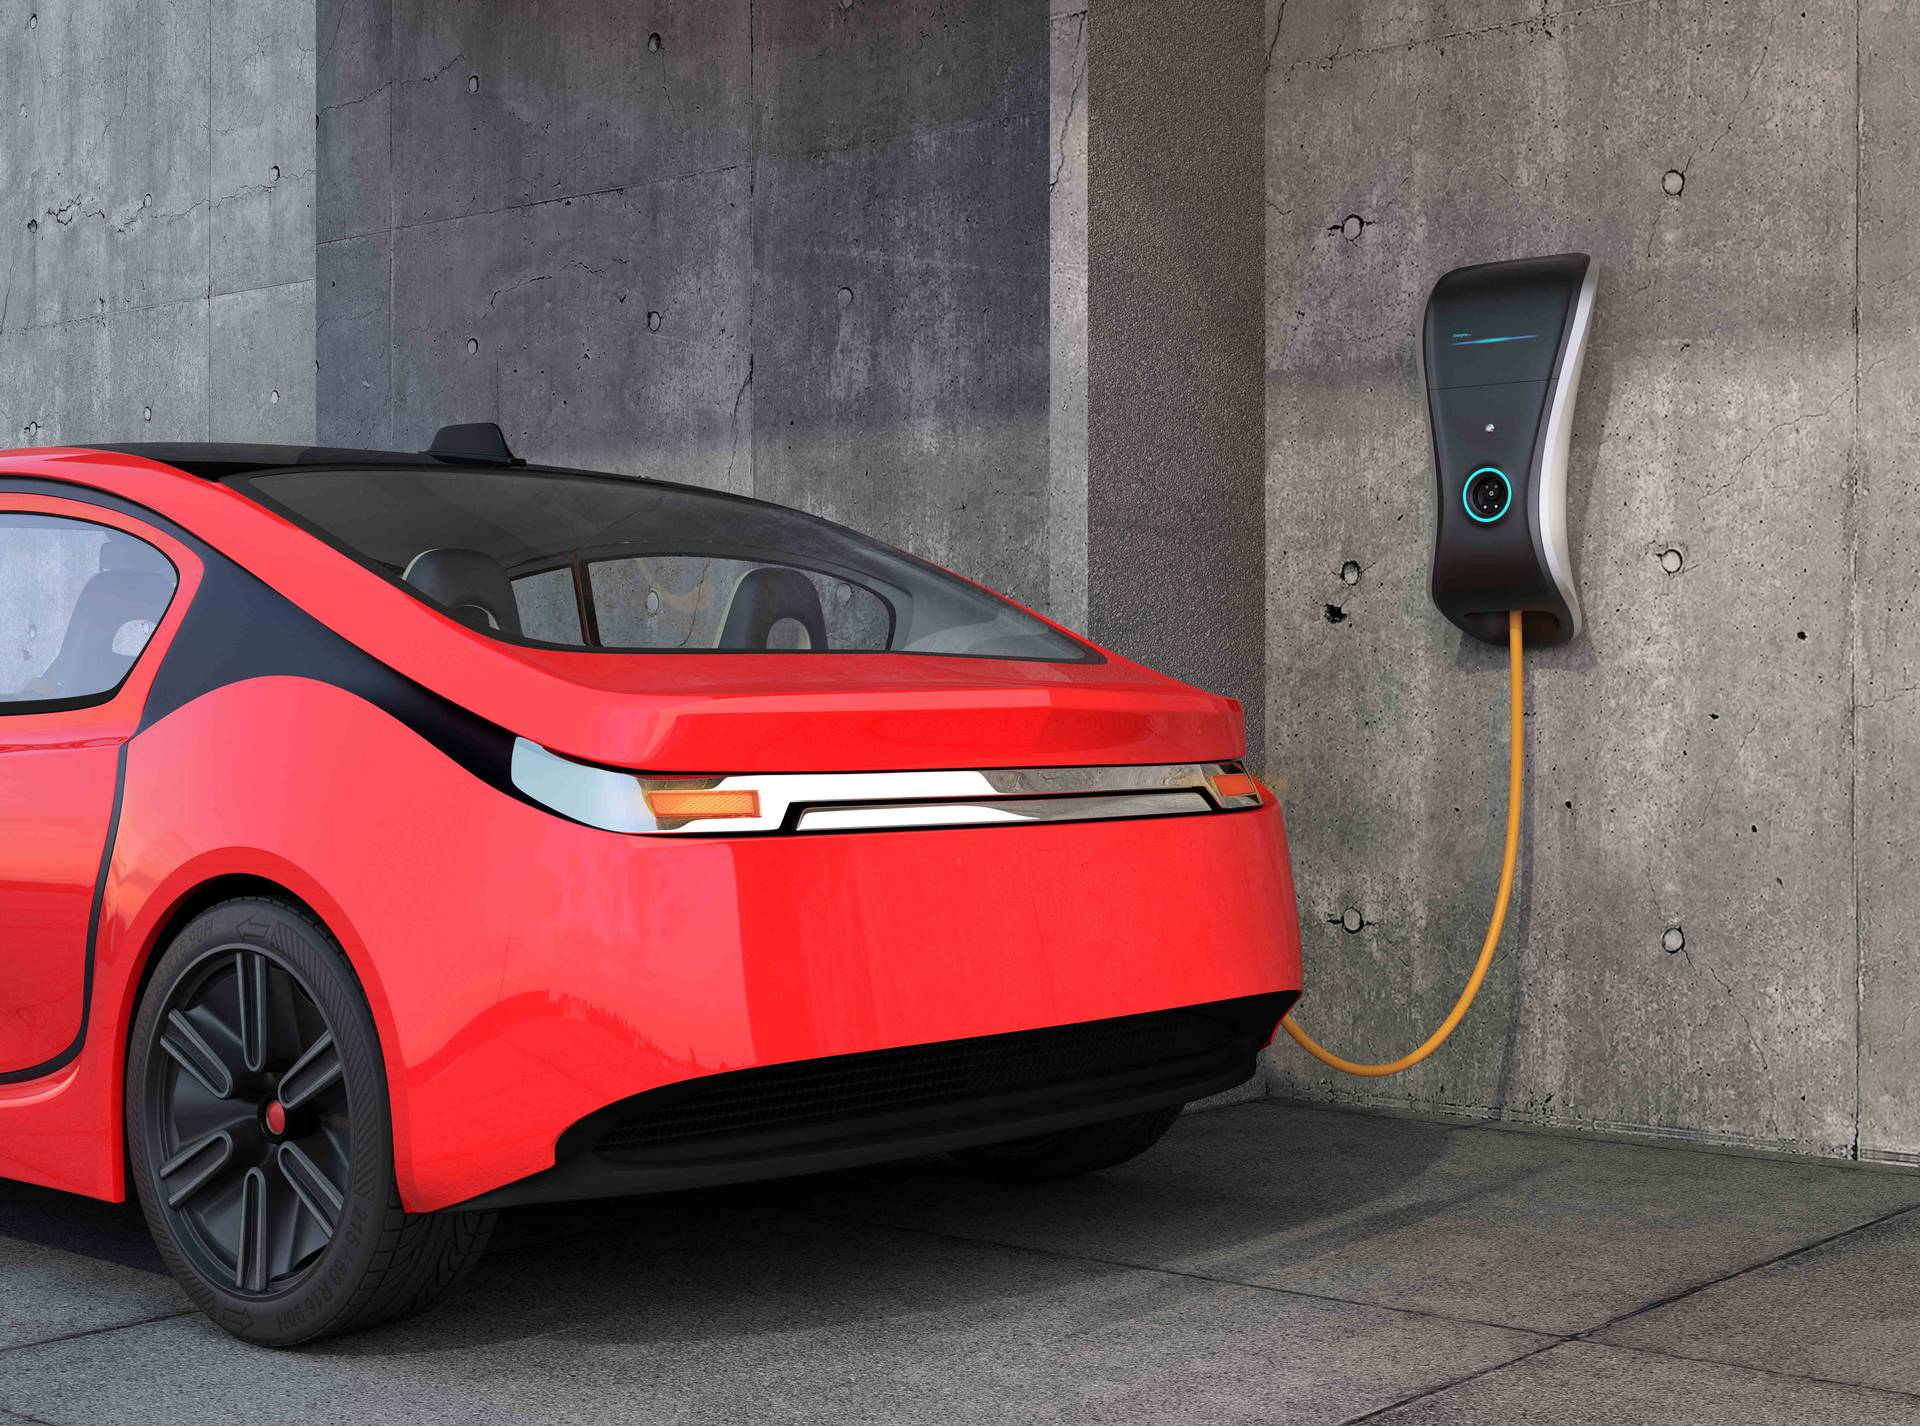 Electrification is the future. According to the International Energy Agency, for example, electricity use in buildings is expected to have nearly doubled by 2040. And roughly 90 percent of all cars worldwide will be plug-in electric by 2060. Trucks, off-highway vehicles and ships will also go electric.